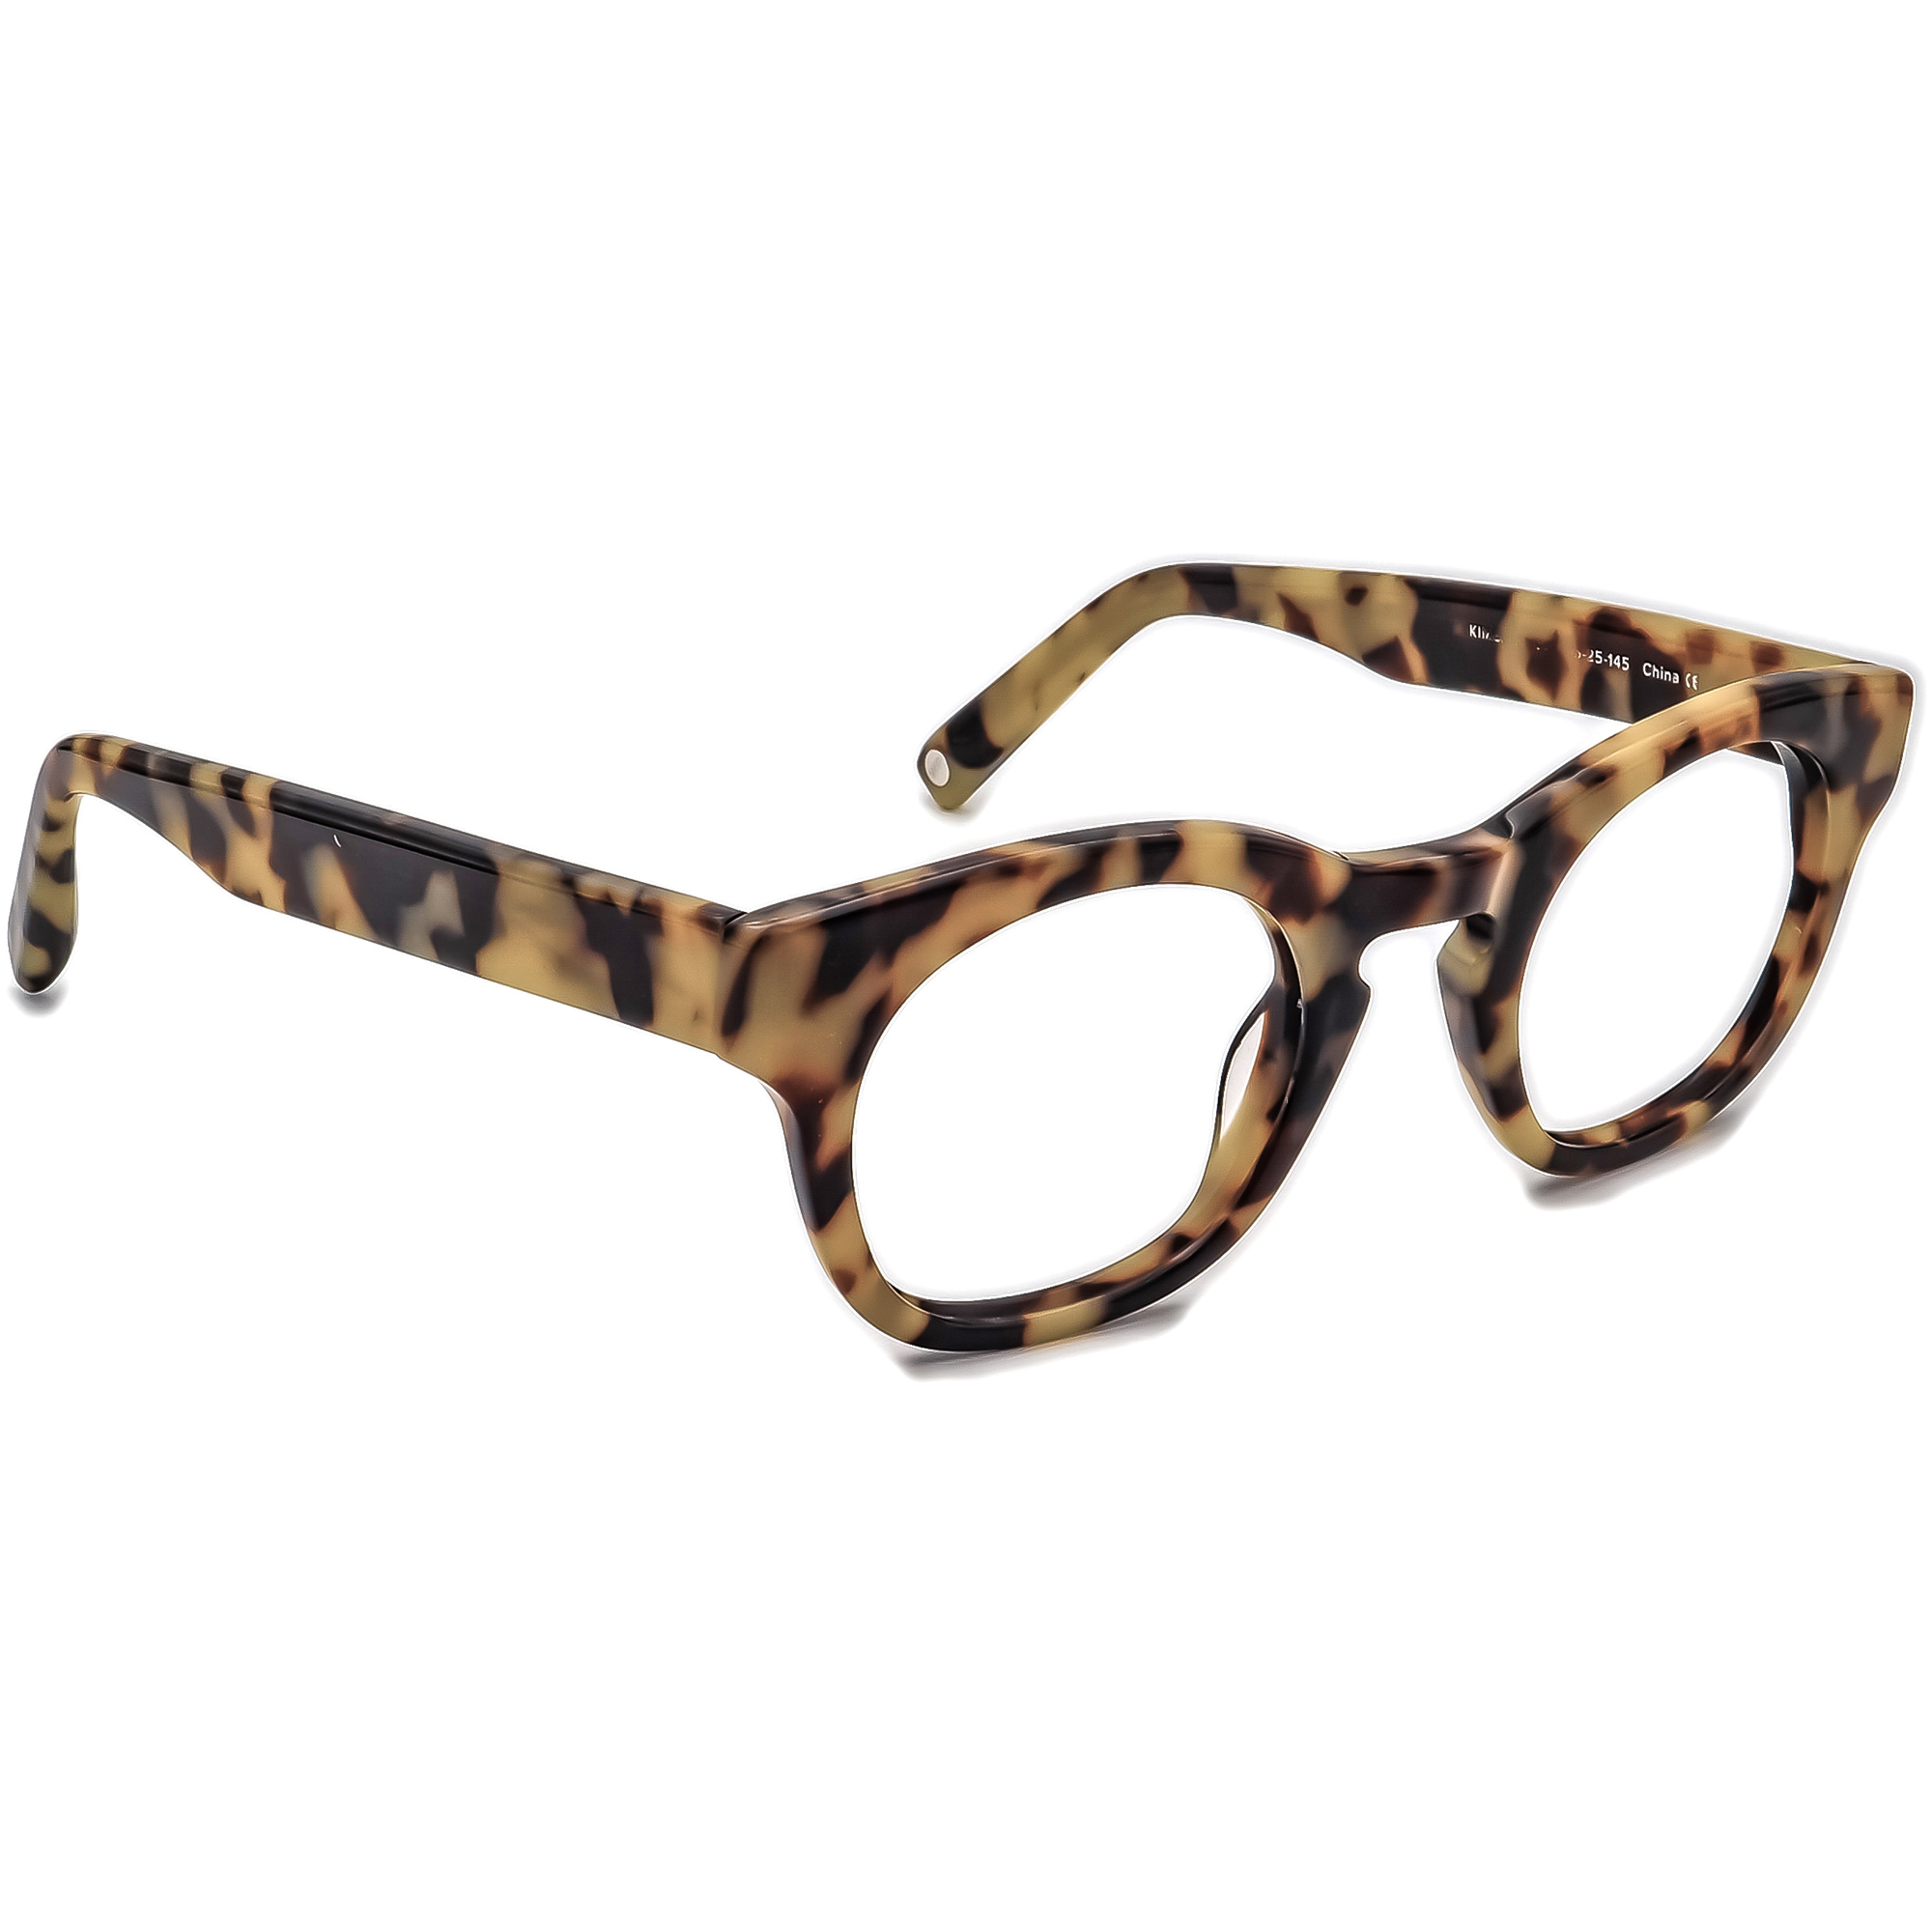 Warby Parker Kimball 195 Eyeglasses